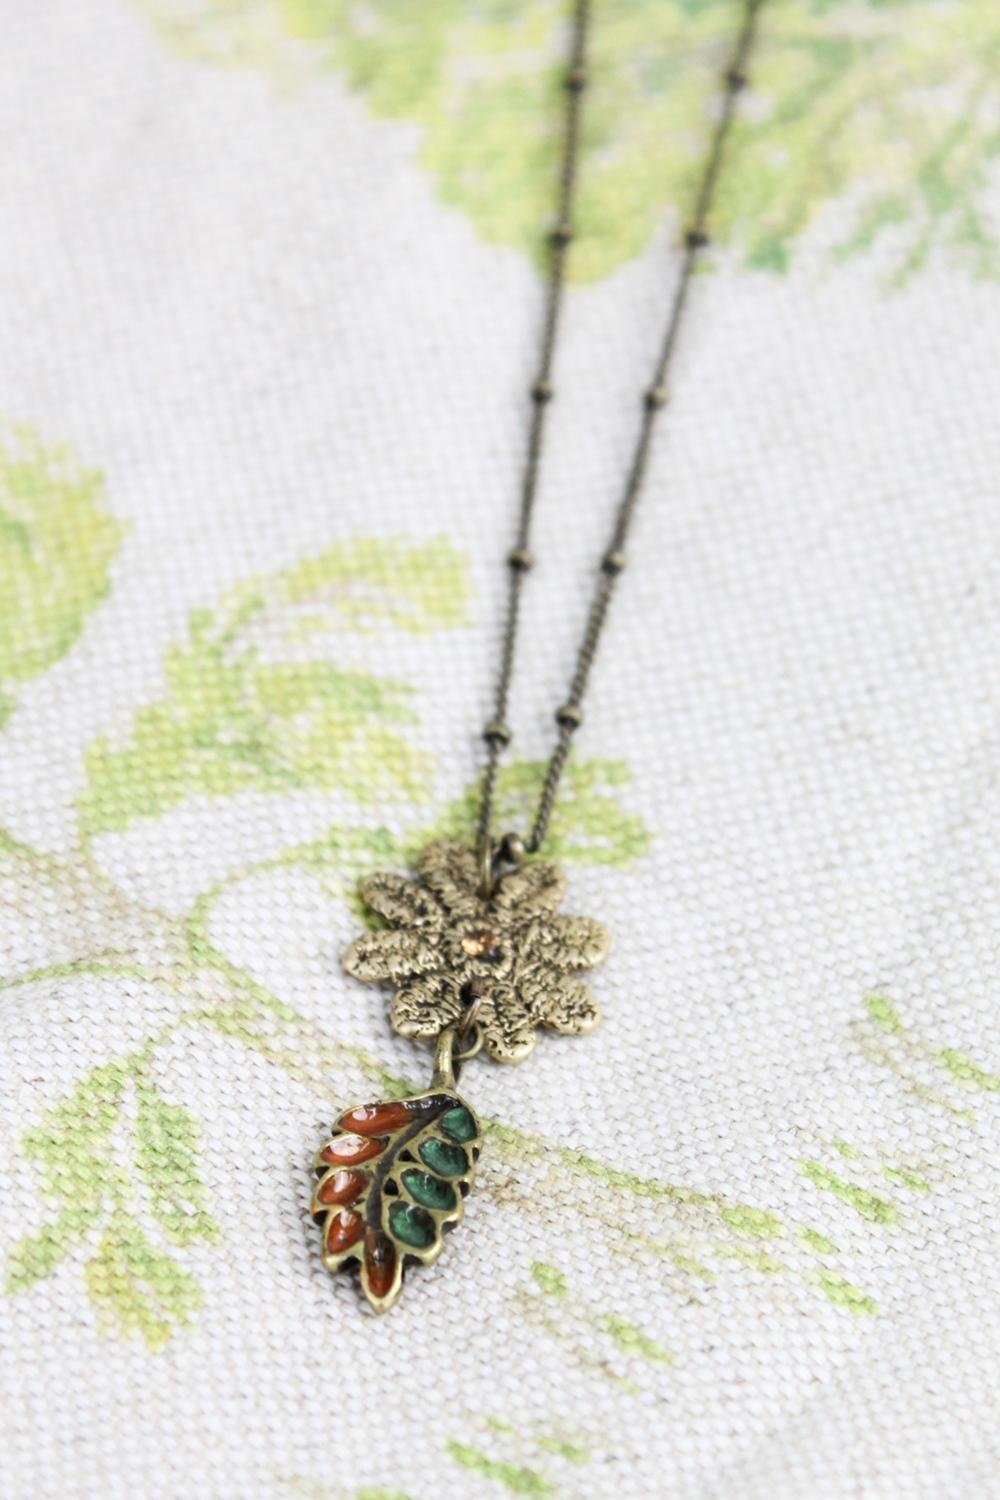 Vintage Necklace with Autumn Leaf